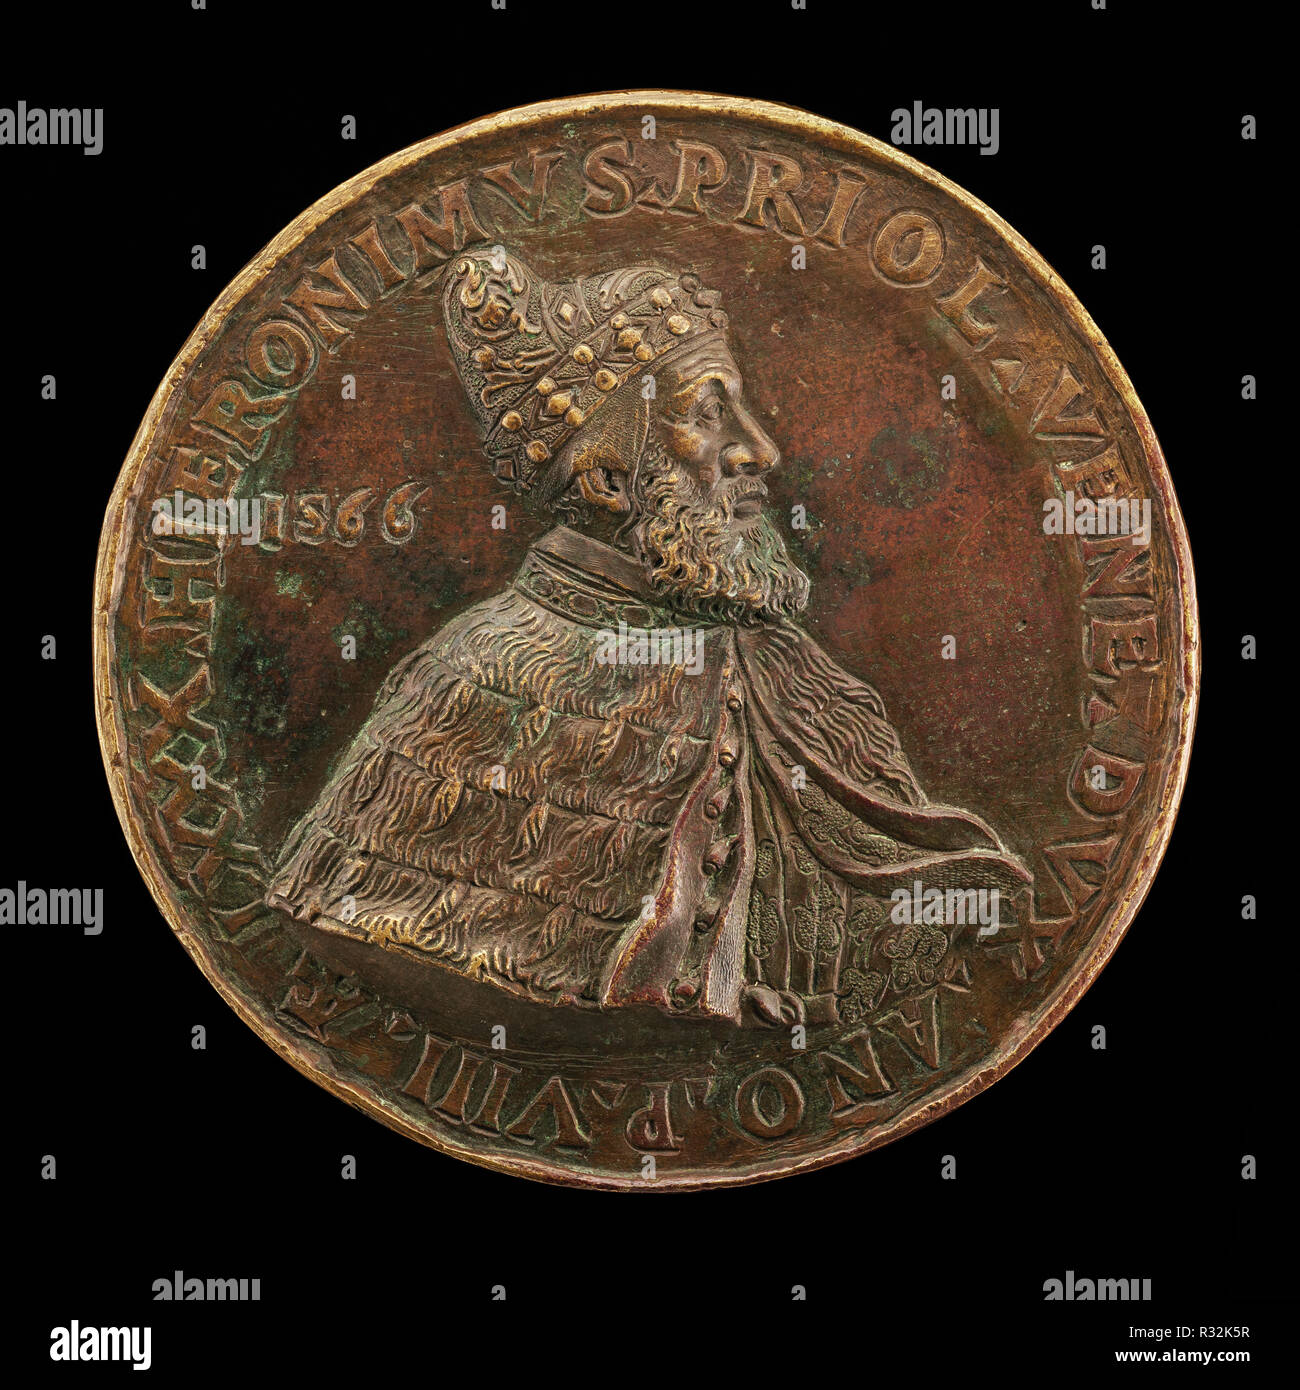 Girolamo Priuli, 1486-1567, Doge of Venice 1559 [obverse]. Dated: 1566. Dimensions: overall (diameter): 9.73 cm (3 13/16 in.)  gross weight: 320.65 gr (0.707 lb.)  axis: 12:00. Medium: bronze//Much tooled. Museum: National Gallery of Art, Washington DC. Author: Italian 16th Century. - Stock Image